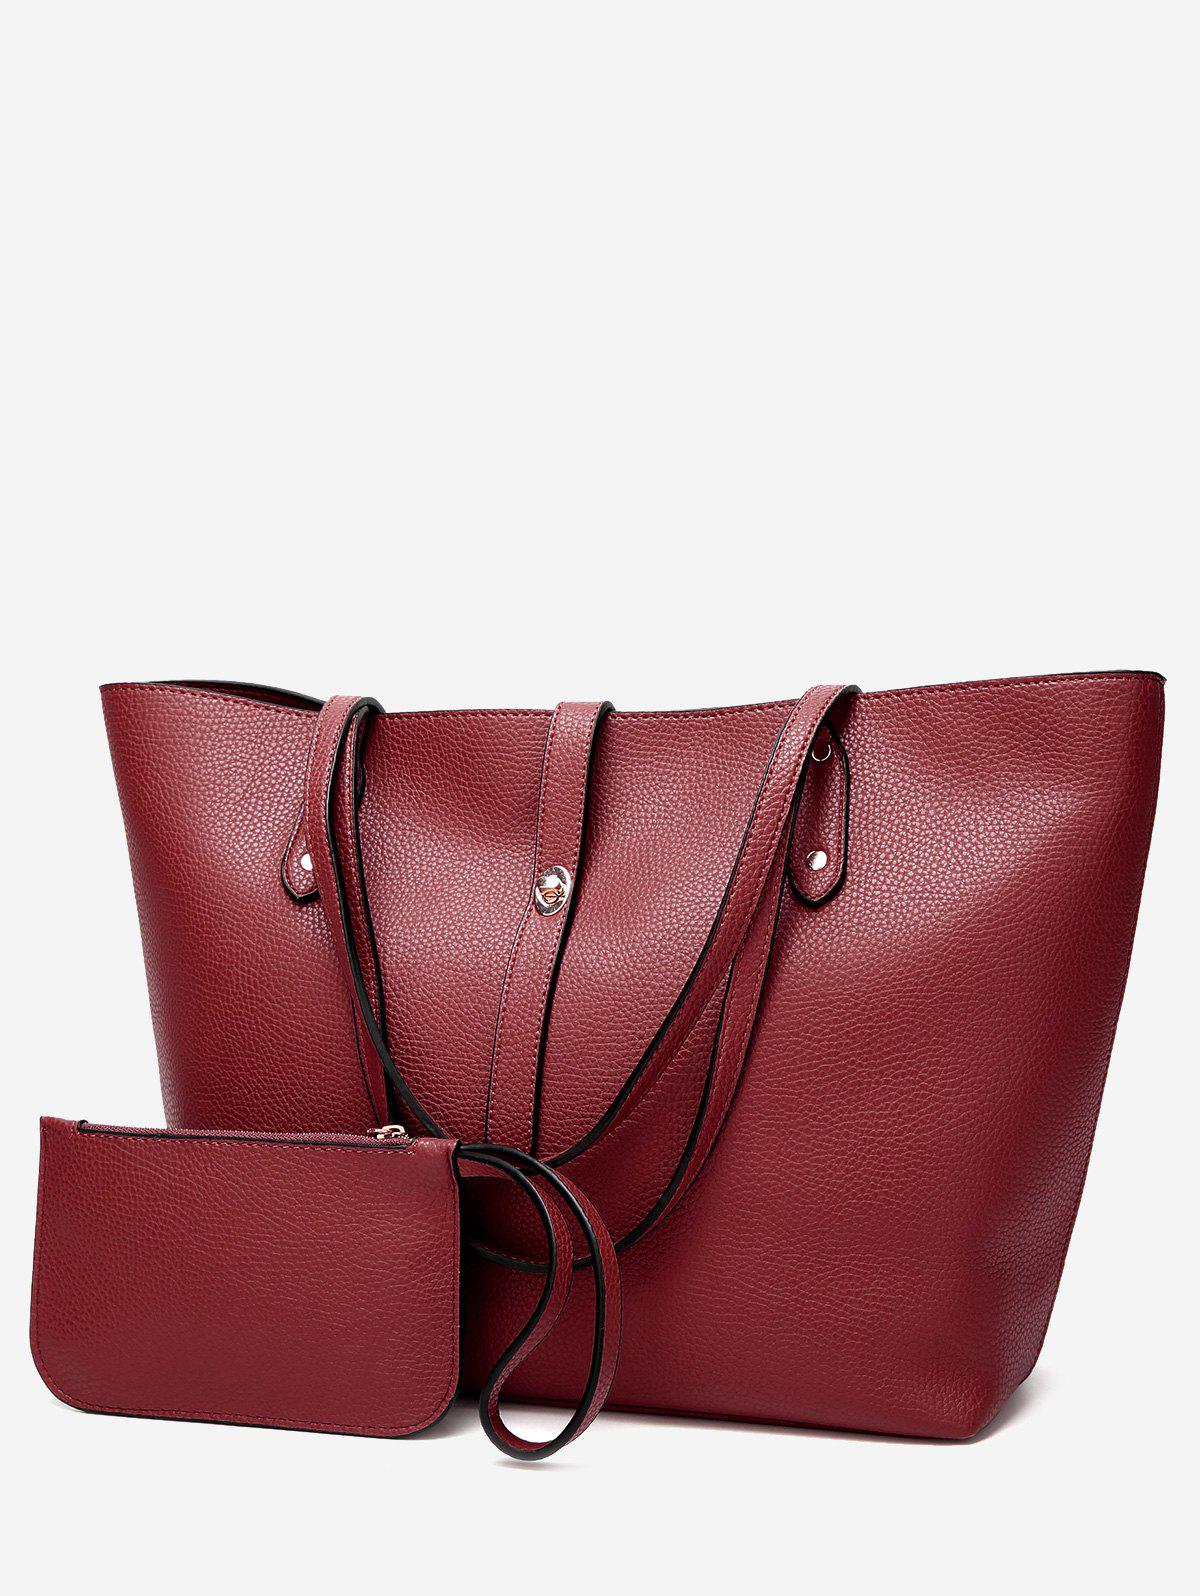 2 Pieces Rivets Shoulder Bag Set - WINE RED